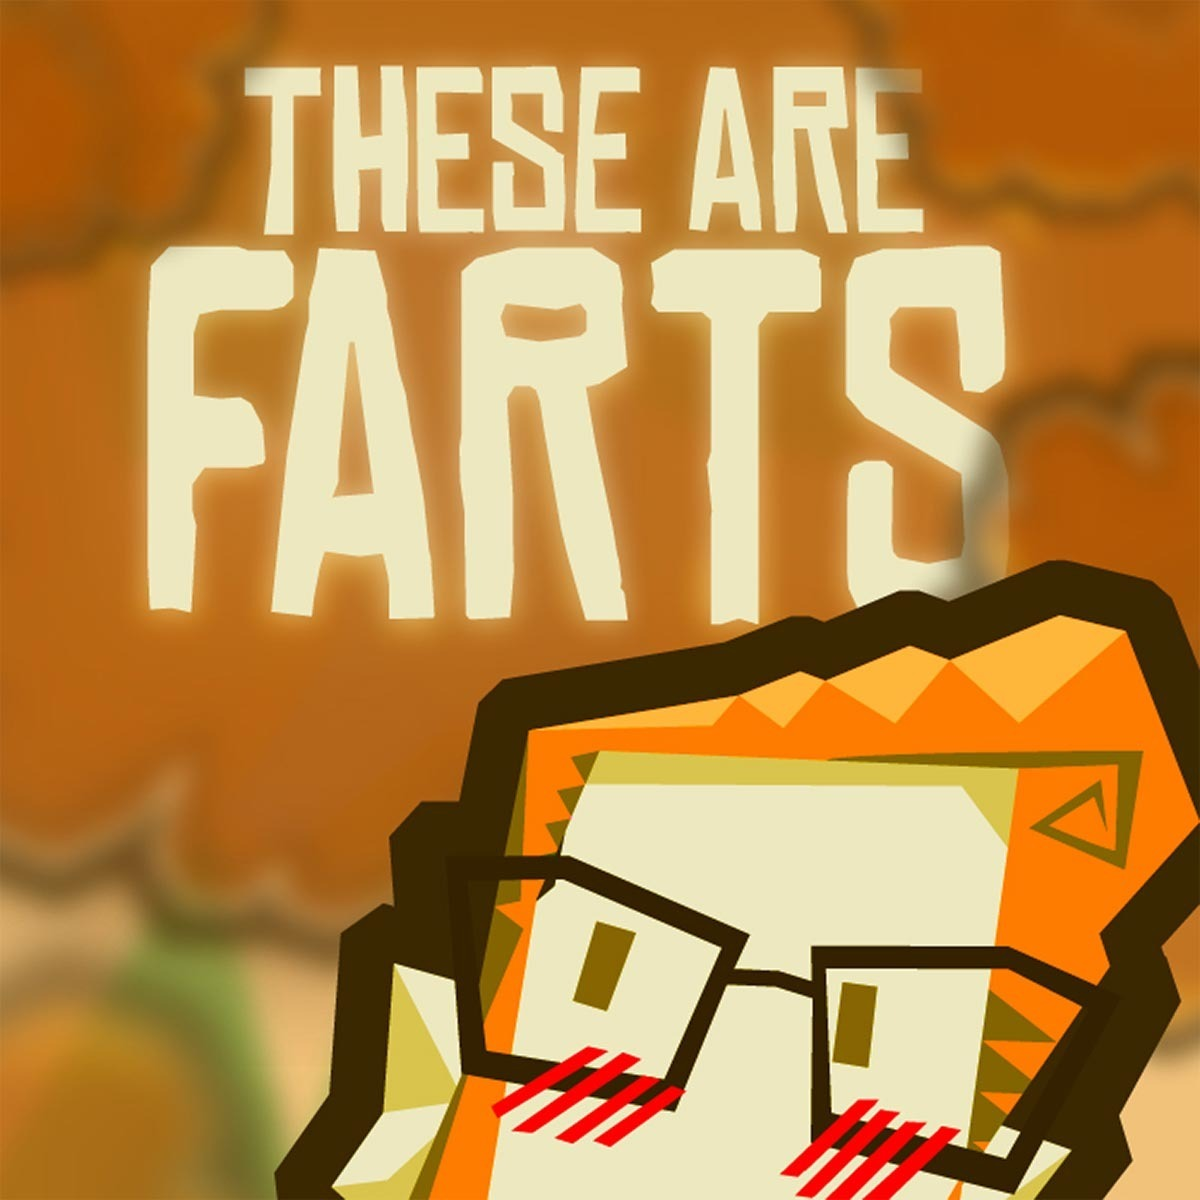 These are Farts